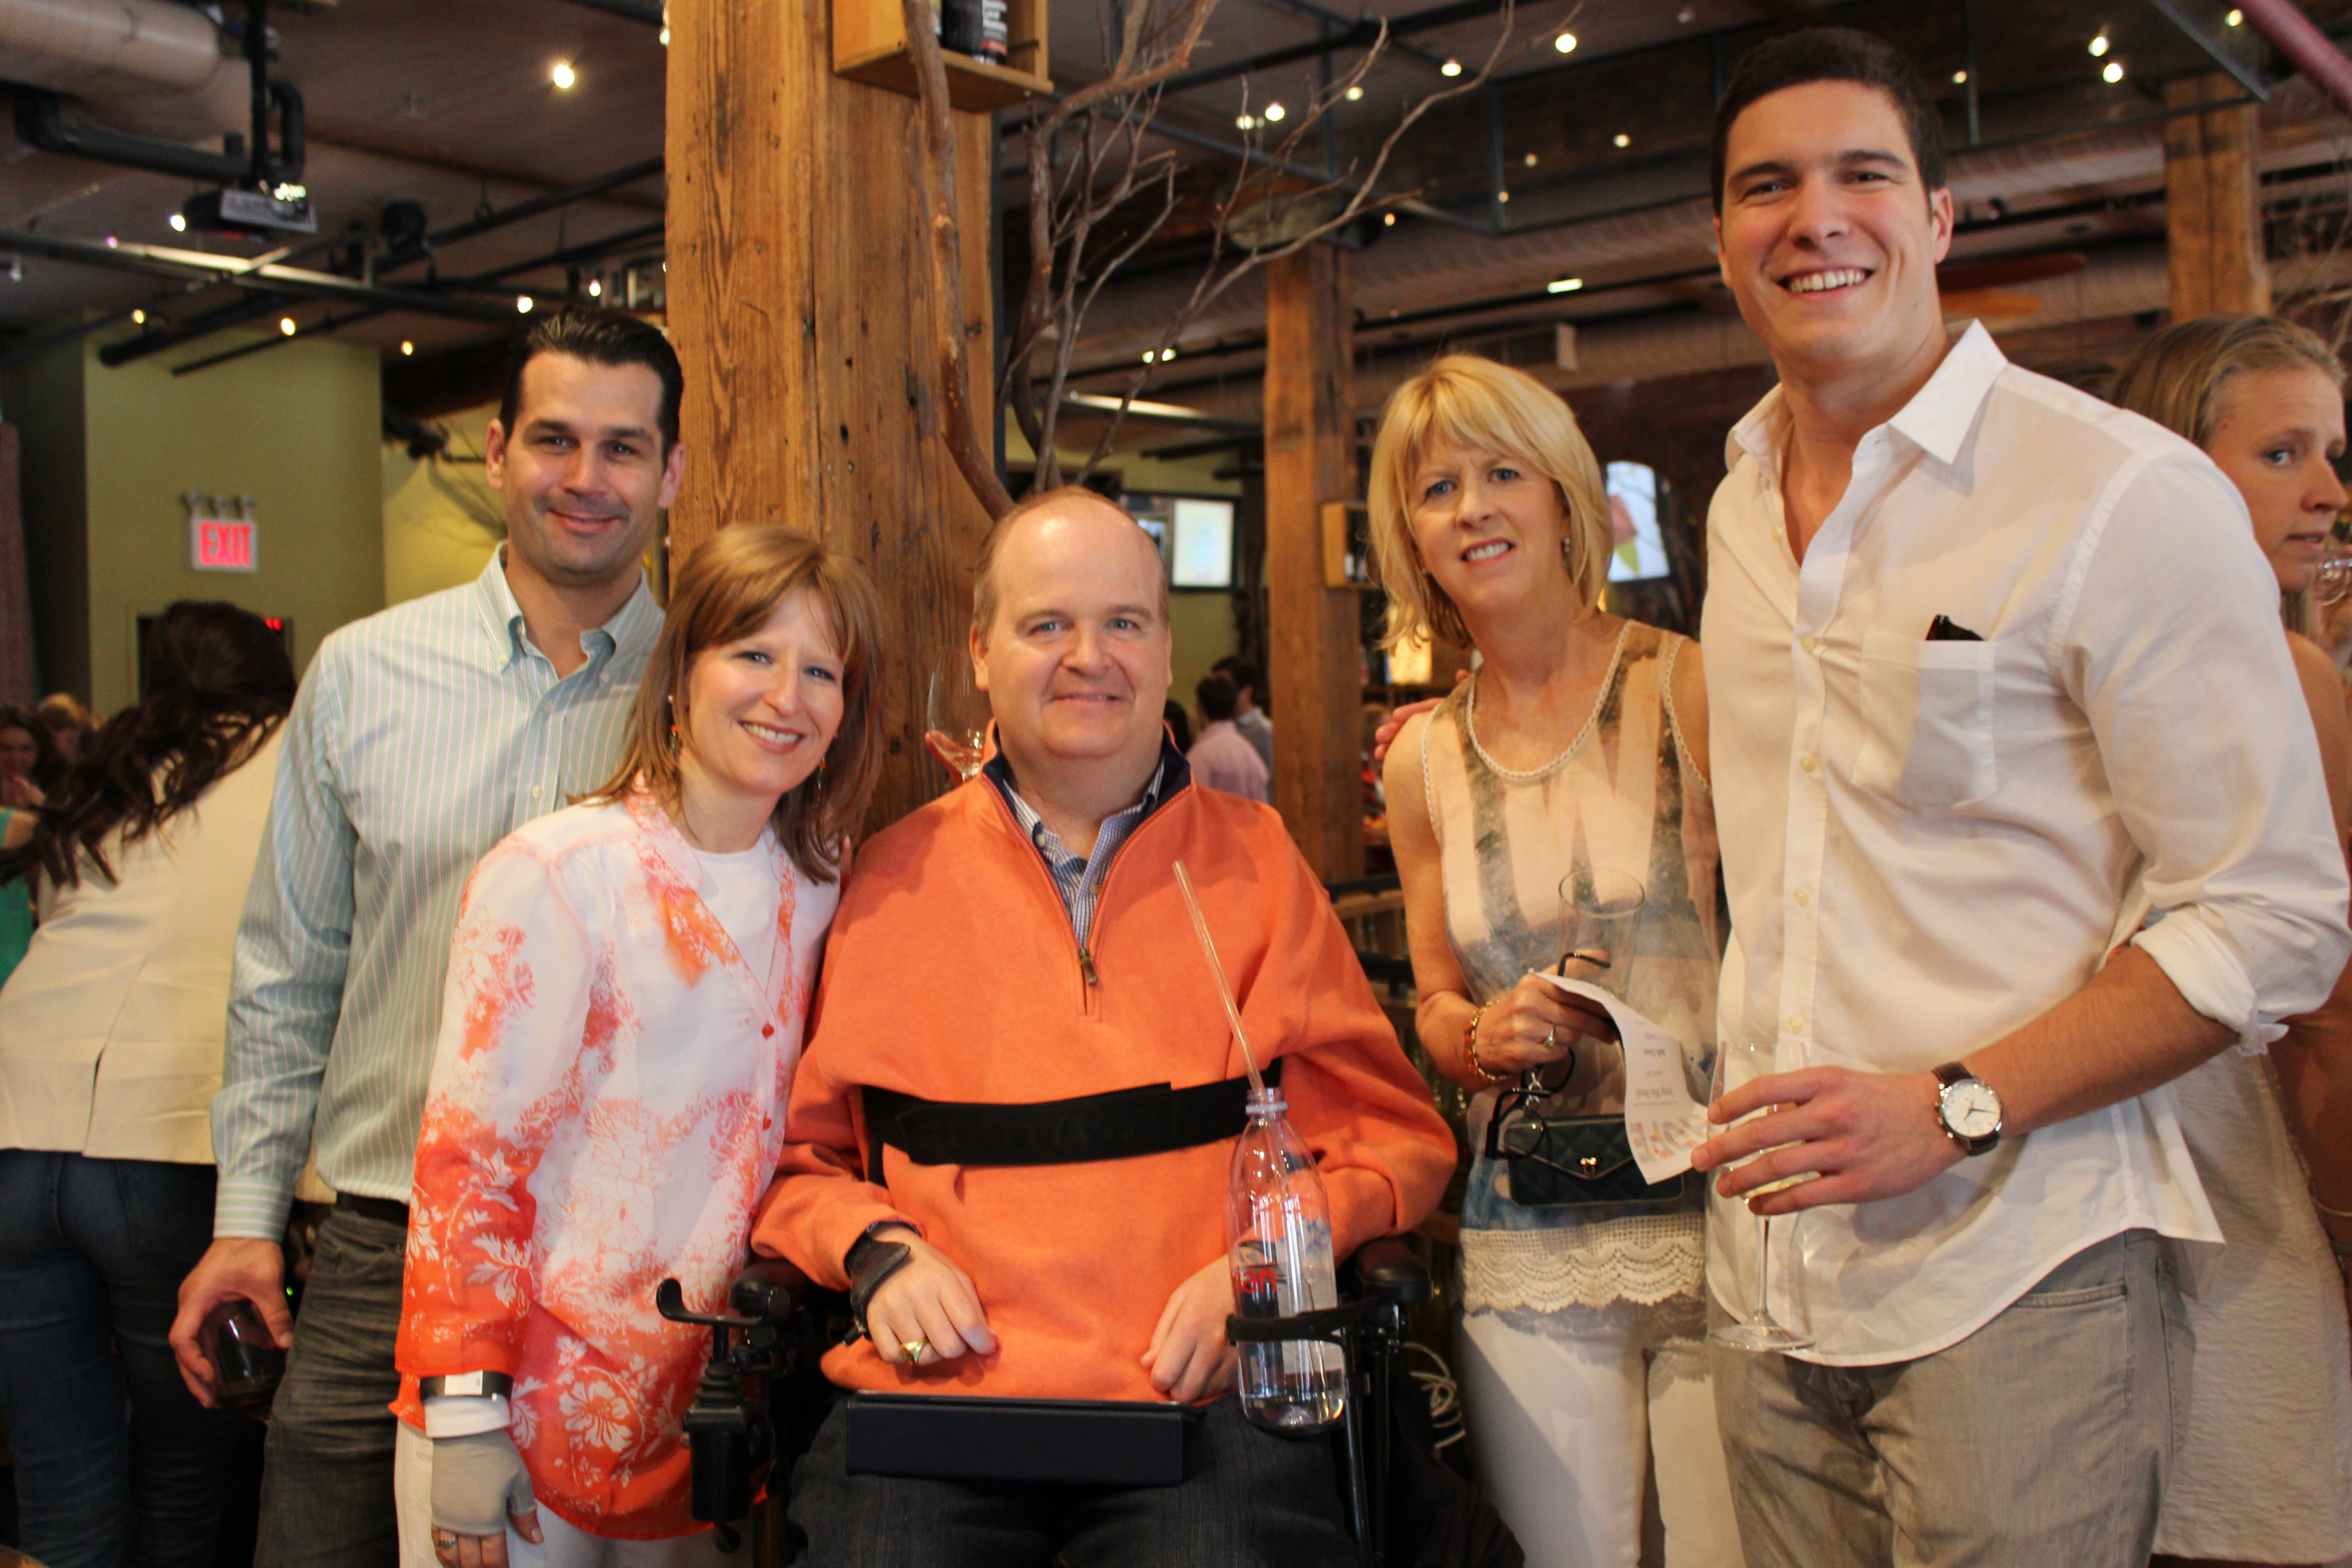 Henry Stifel and family with Will Reeve